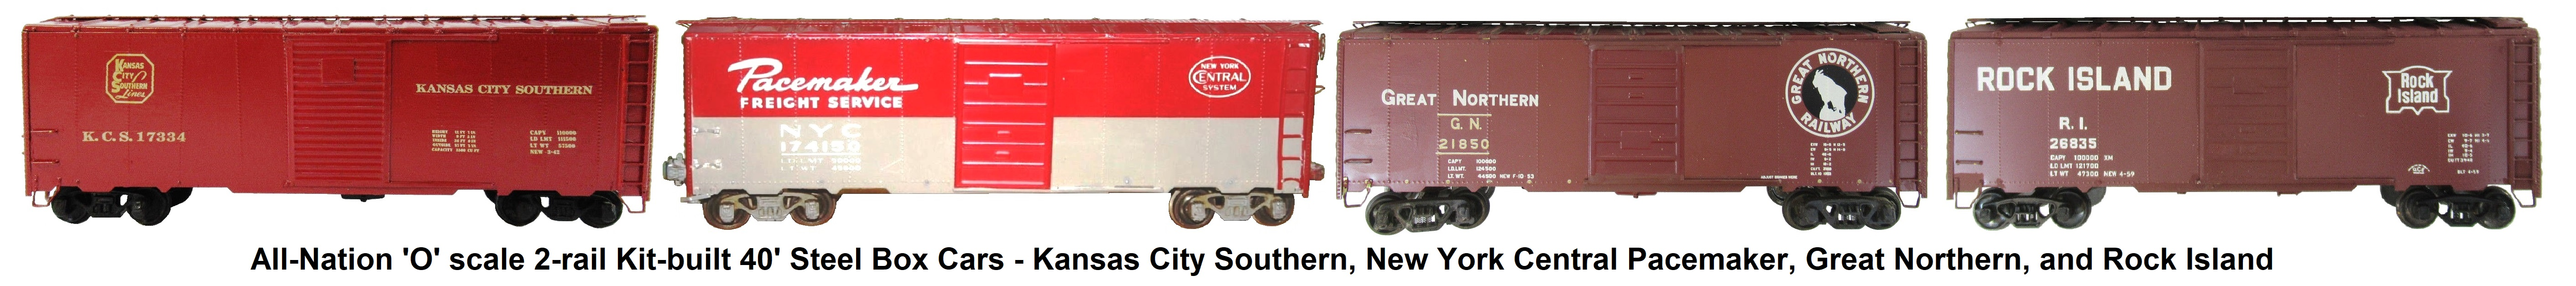 All-Nation 'O' scale 2-rail Kit-built 40' Steel Box Cars - Kansas City Southern, New York Central Pacemaker, Great Northern, and Rock Island